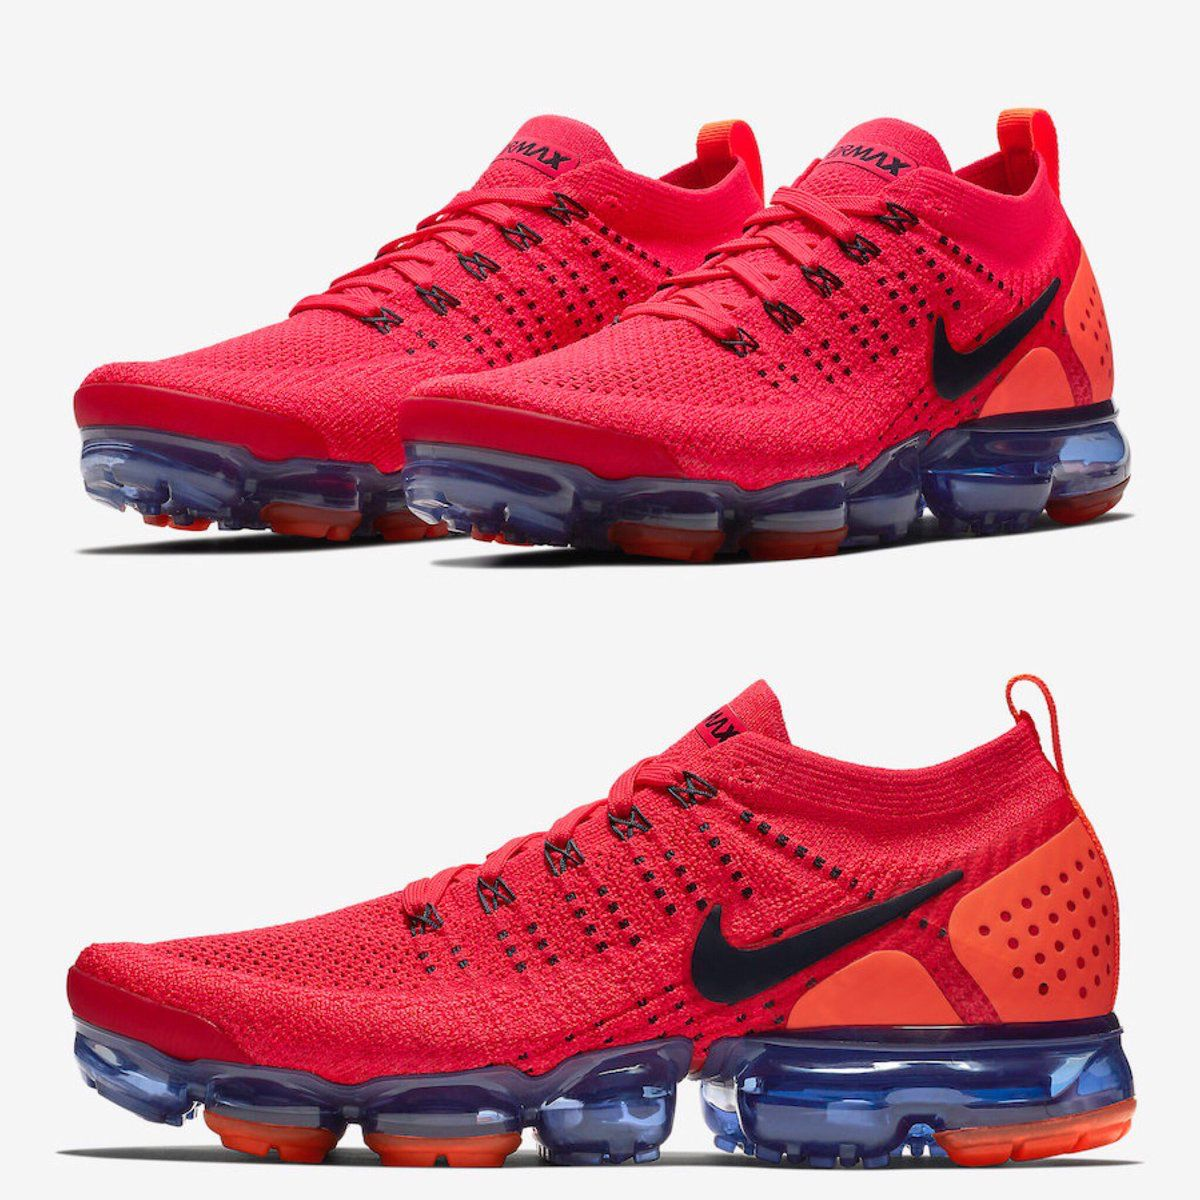 """huge selection of 5f0e7 517ff Nike Vapormax Flyknit 2 """"Spiderman"""" Style Code: AR5406-600 ..."""